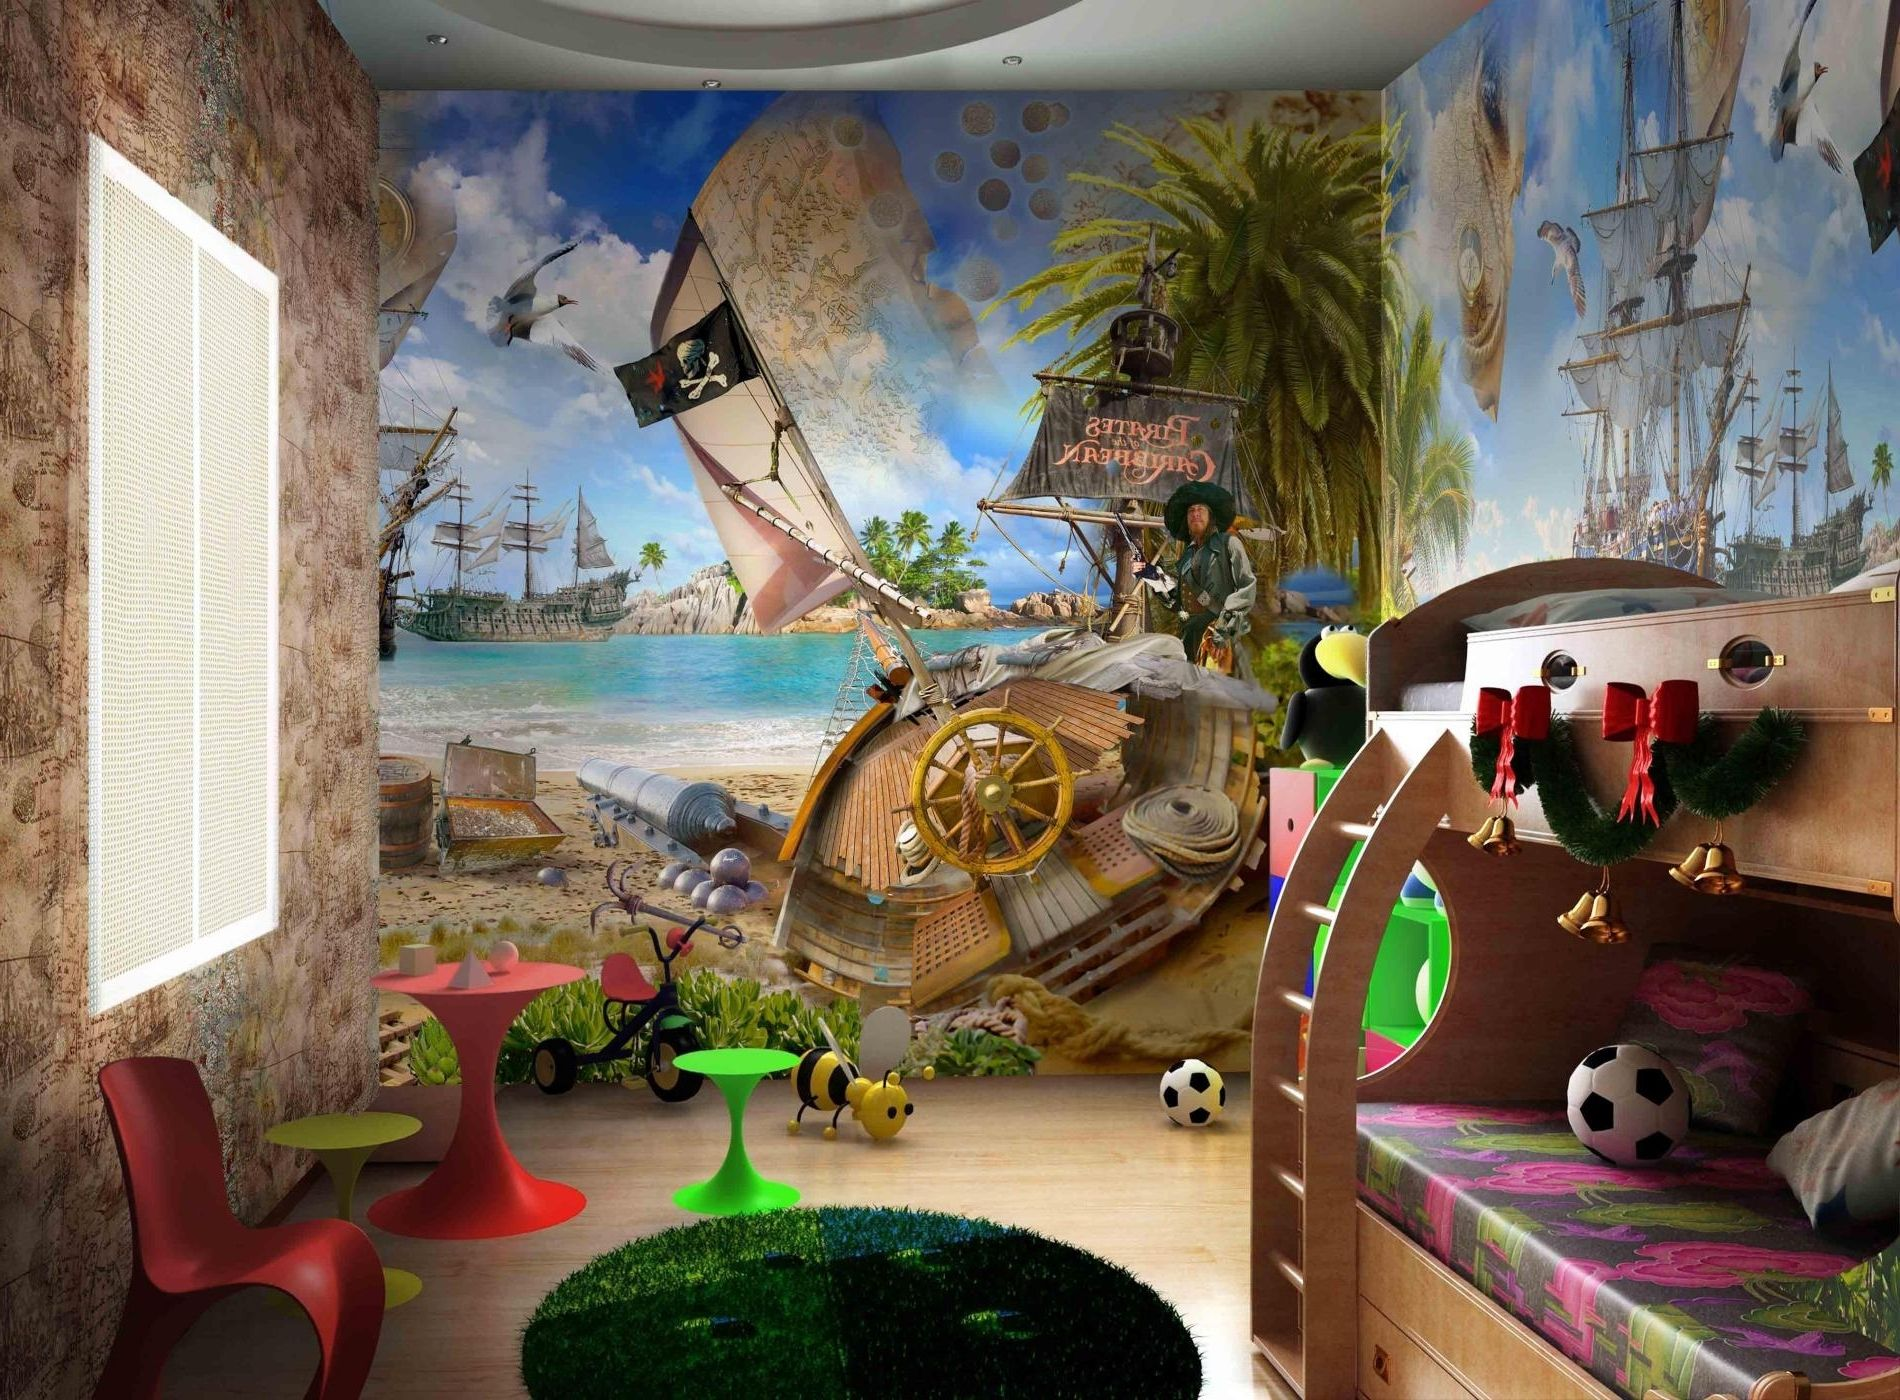 Disney wall murals wallpaper gallery home wall decoration ideas disney wall murals wallpaper gallery home wall decoration ideas disney wall murals wallpaper image collections home amipublicfo Gallery